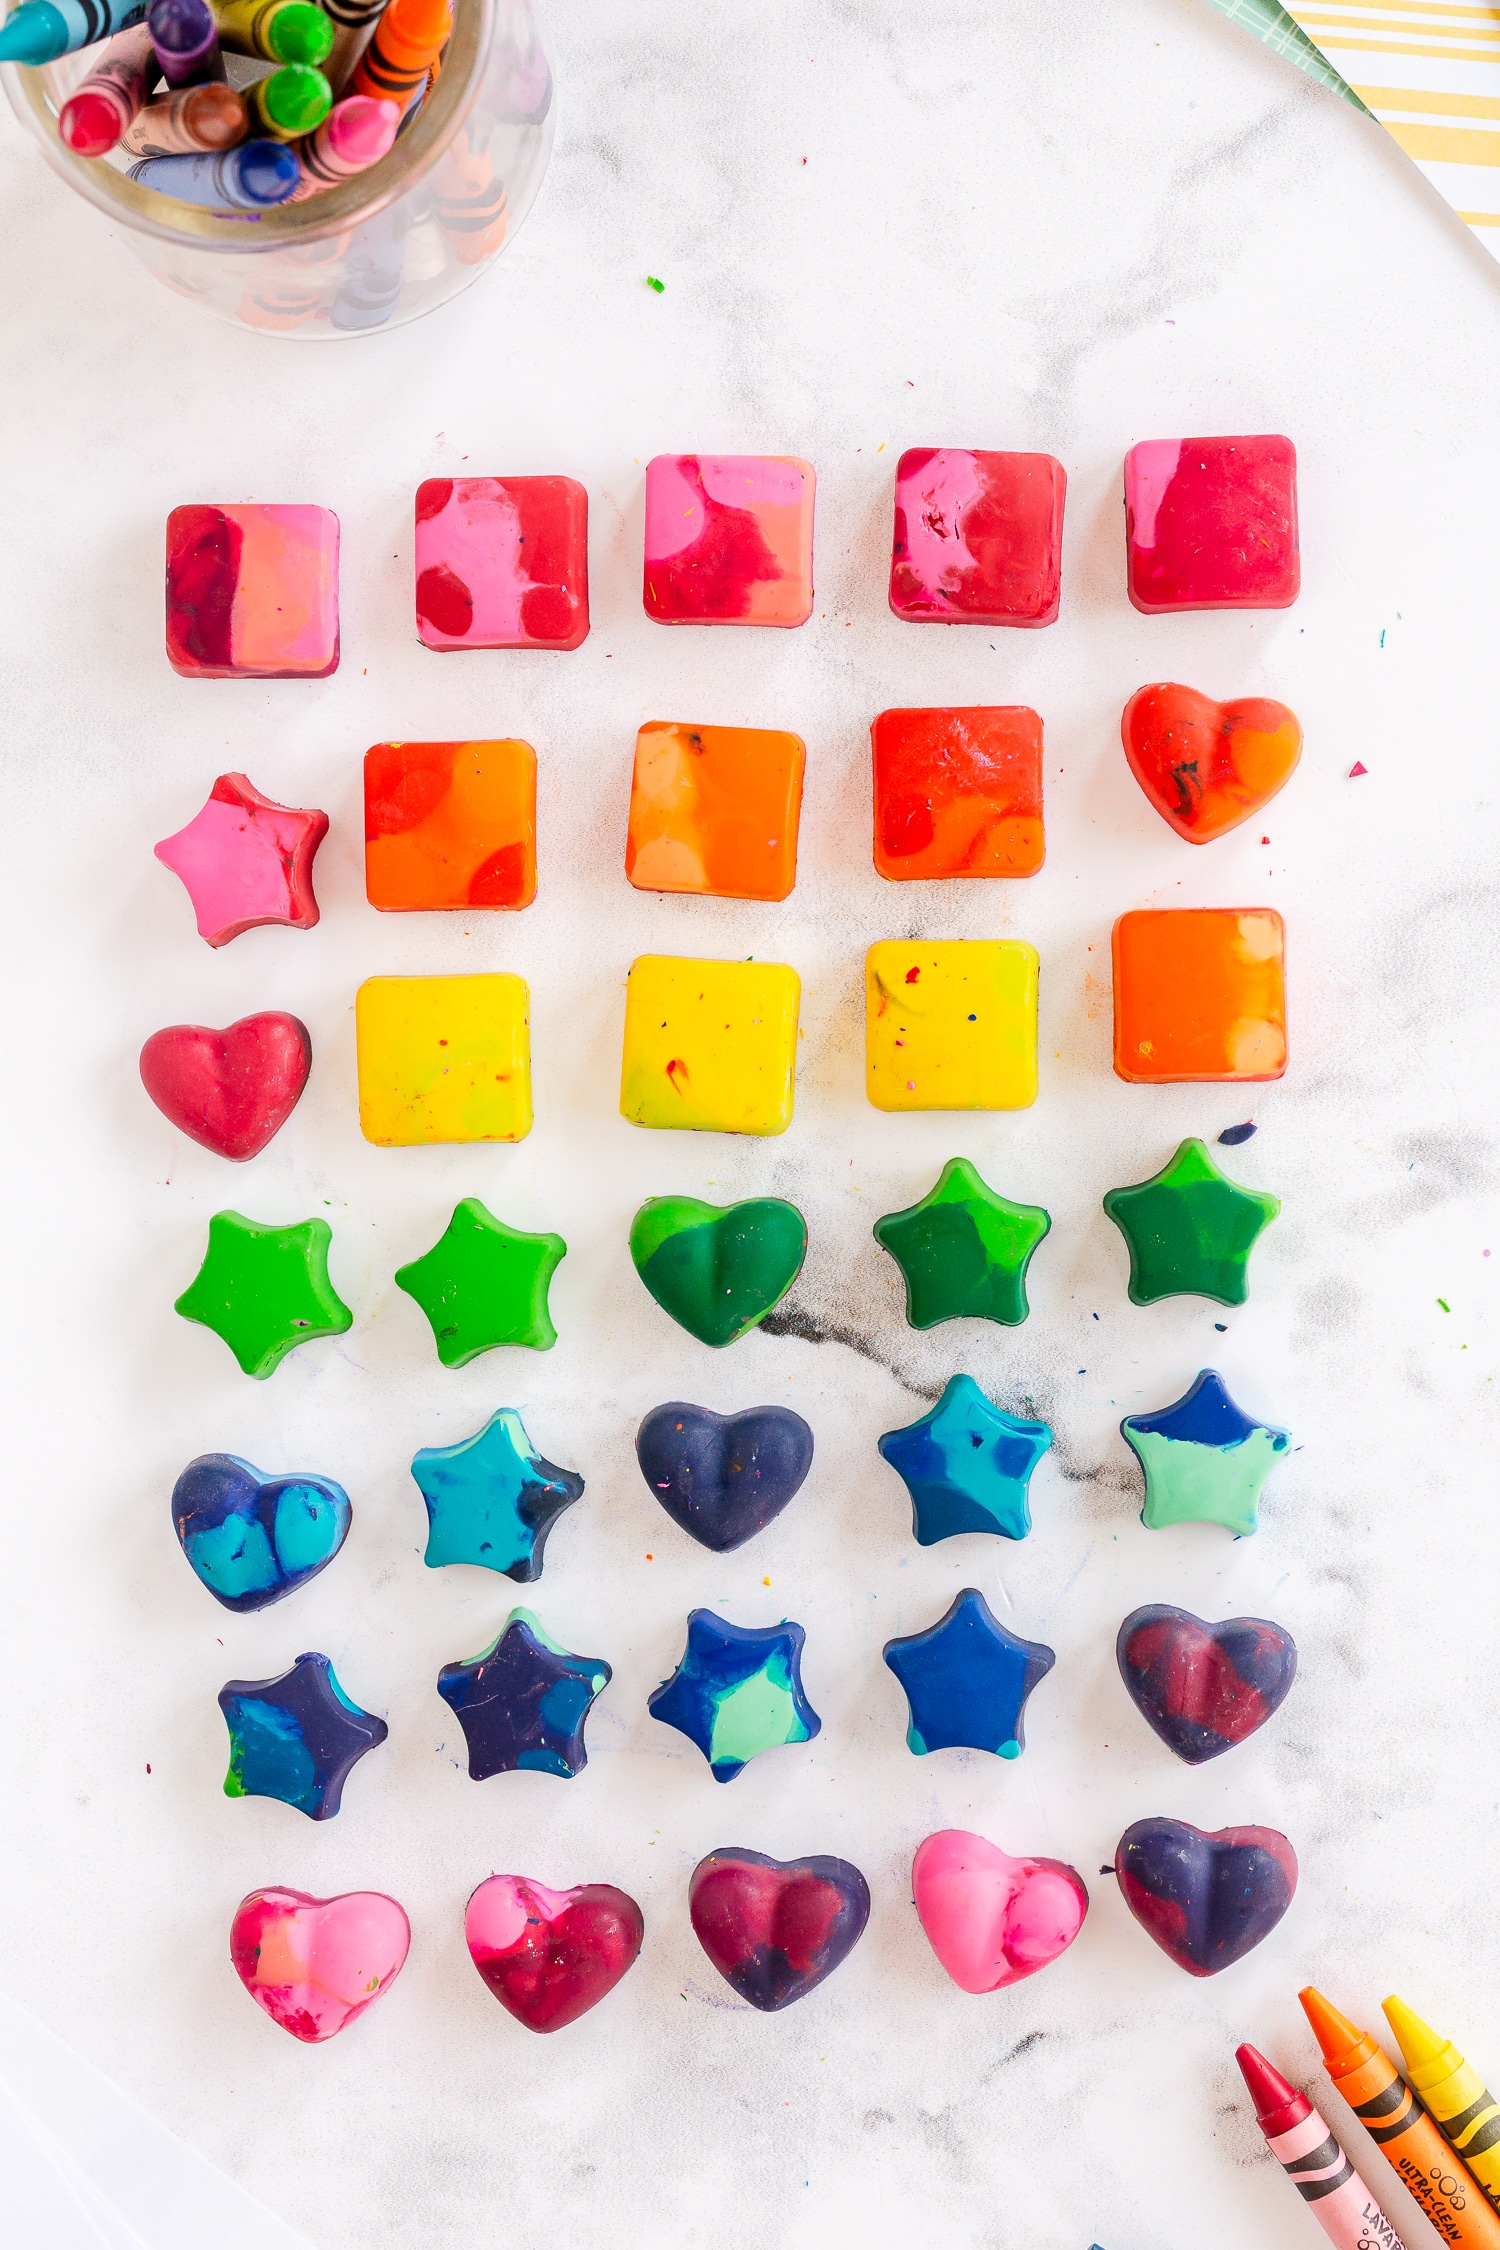 These DIY crayons are such a fun activity for the kids to repurpose some of their old and broken crayons into some fun new shapes ready for coloring!